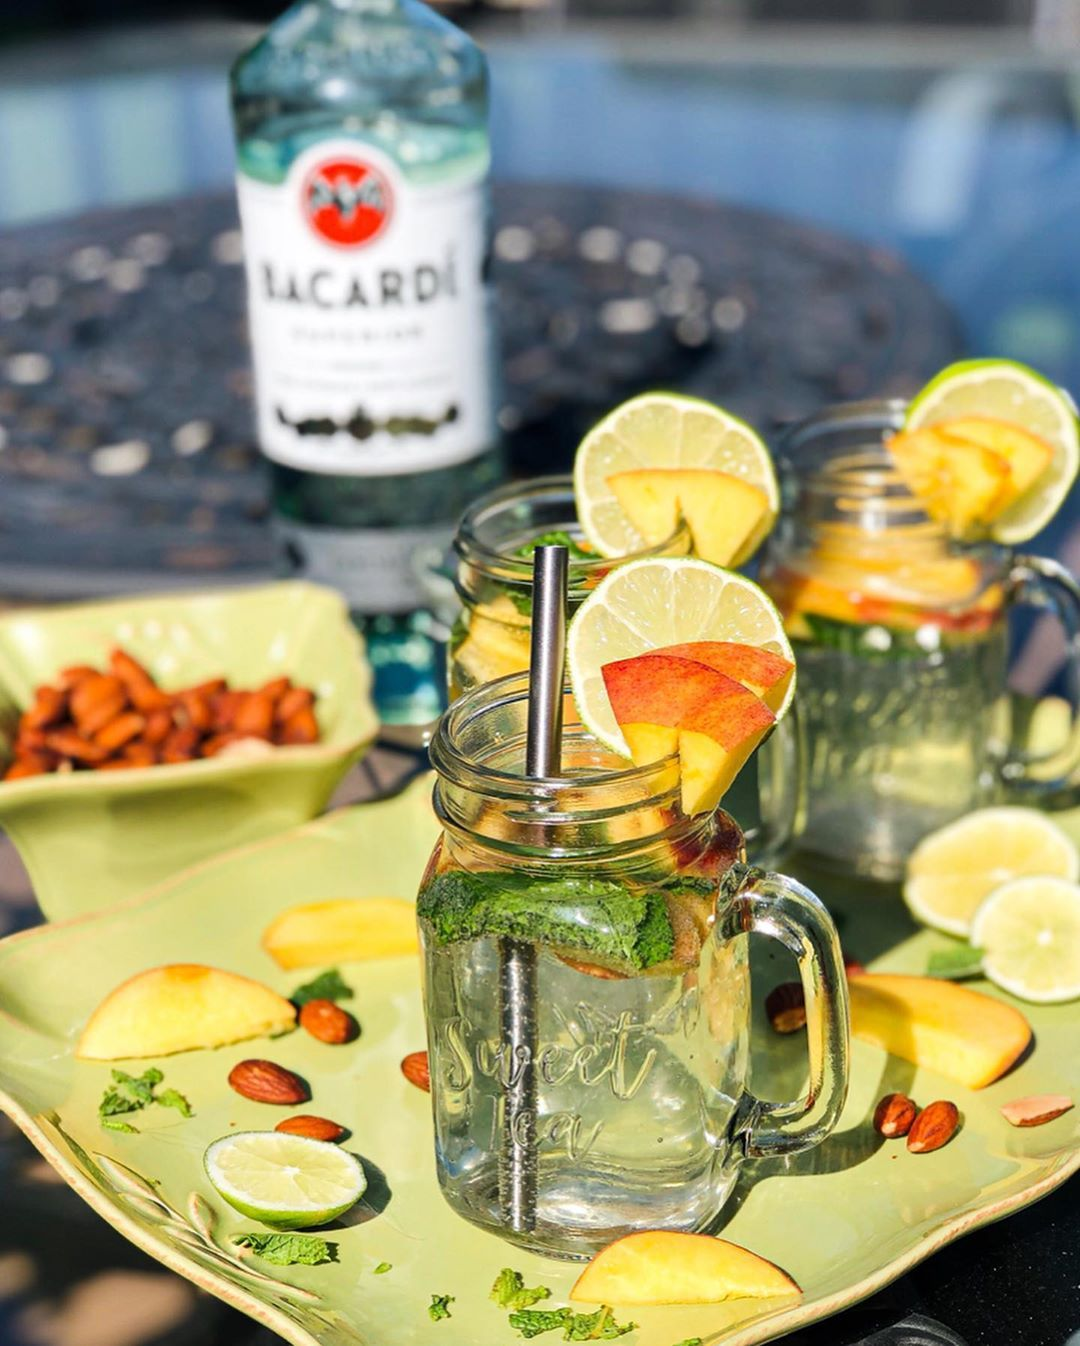 The Best Low Calorie Summer Cocktail! This Peach Mojito